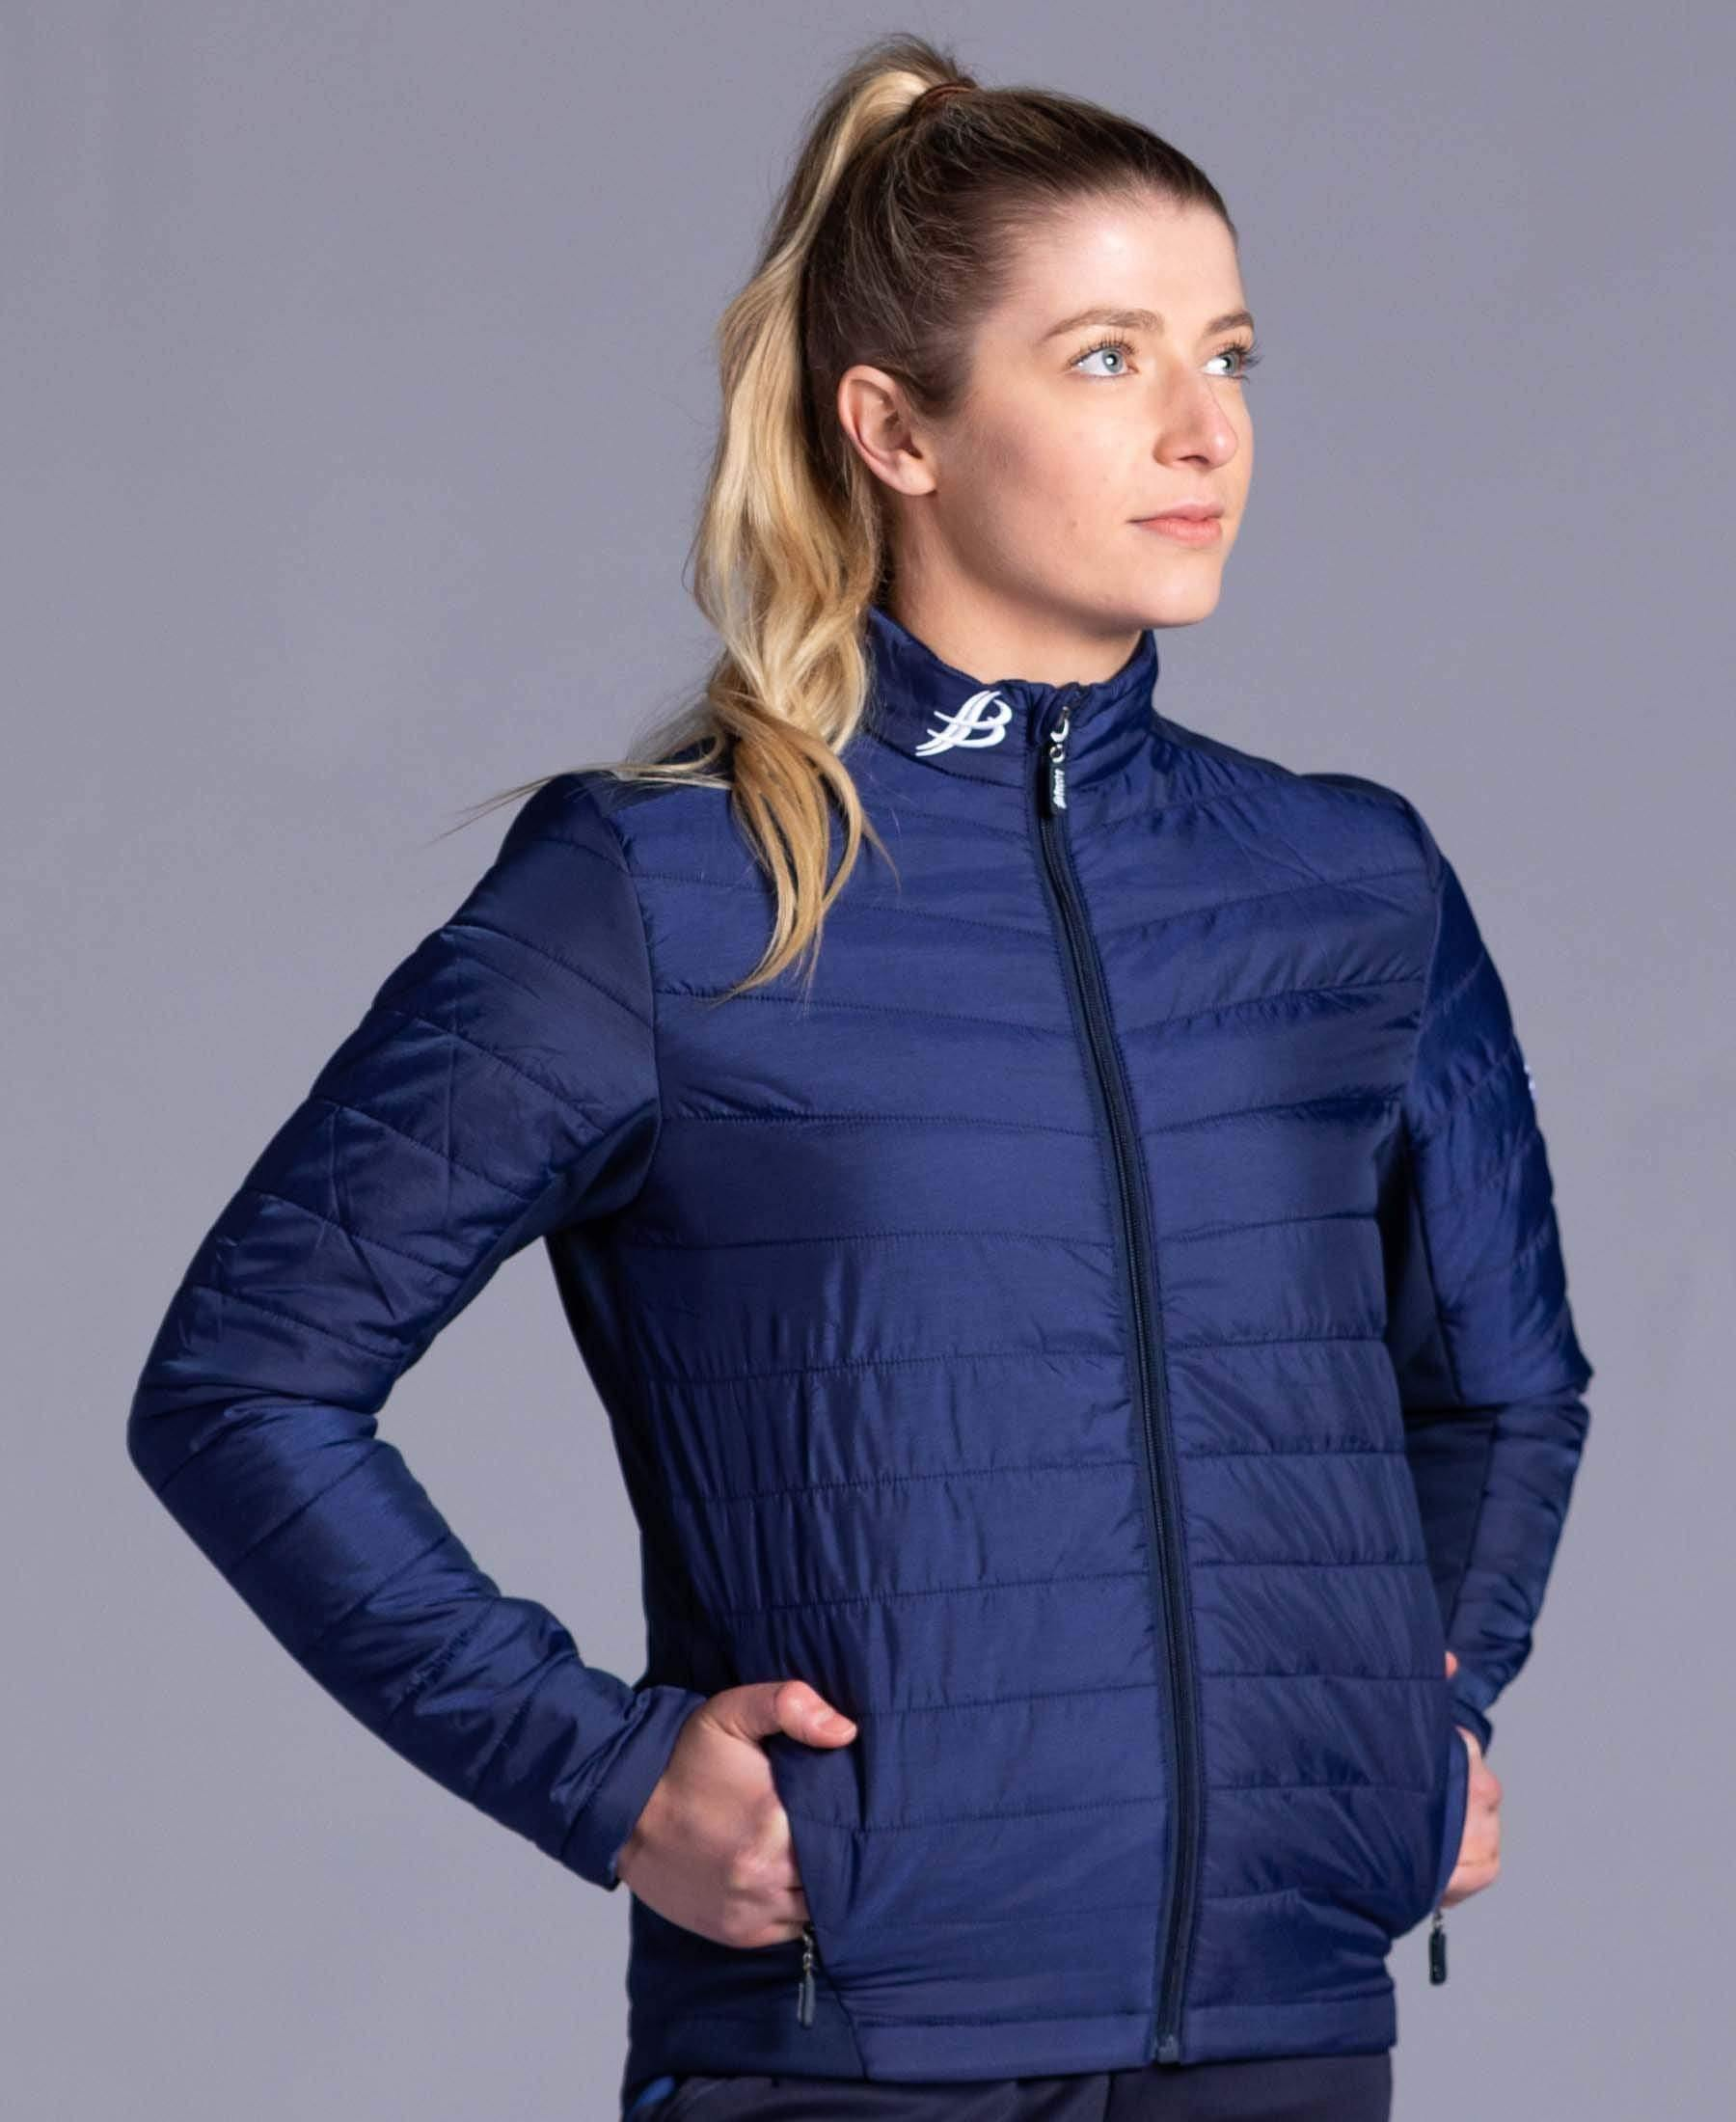 BUA20 Adult Jacket (Navy)